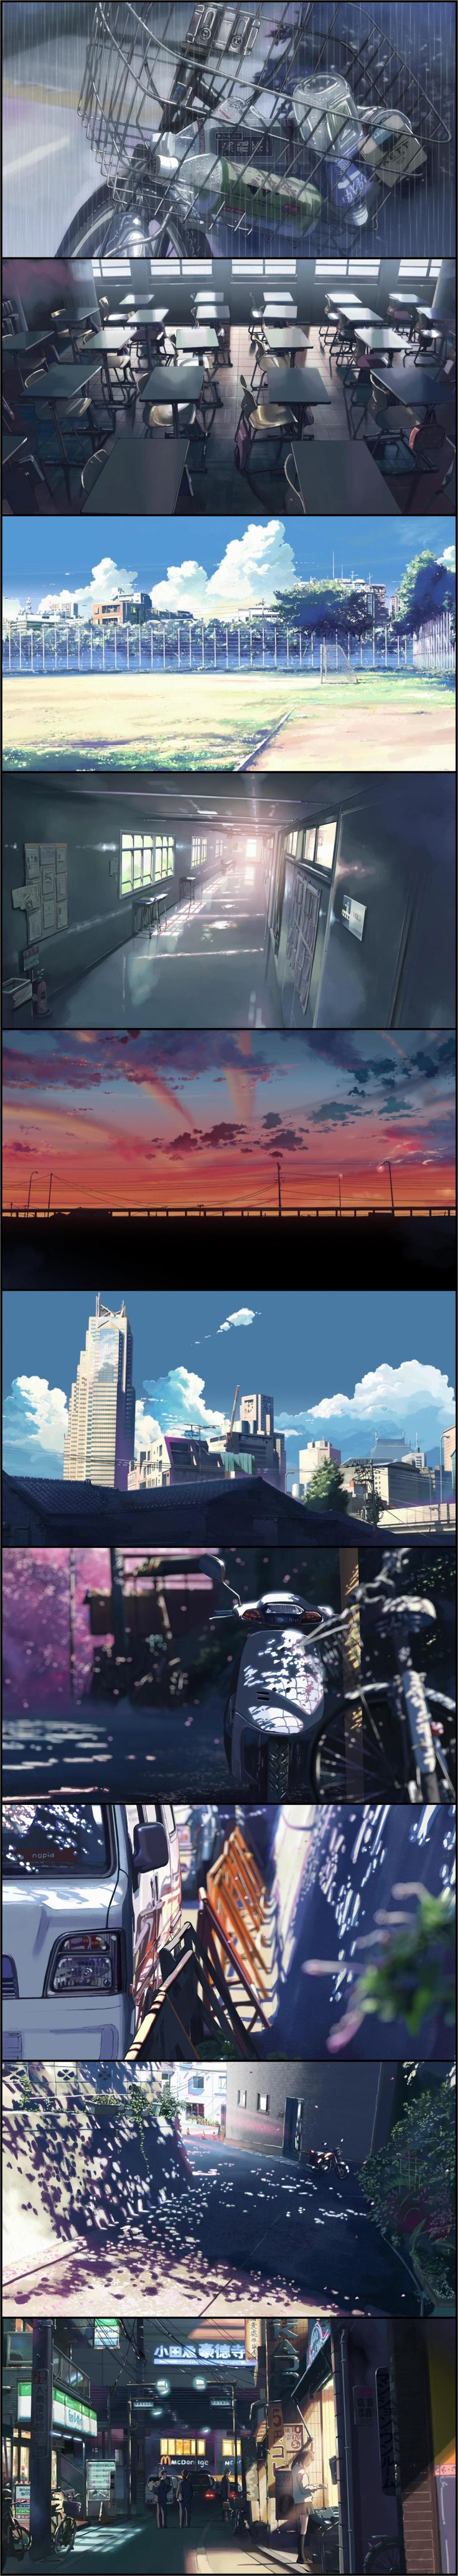 5 Centimeters Per Second. Directed by Makoto Shinkai. Created by CoMix Wave Inc.